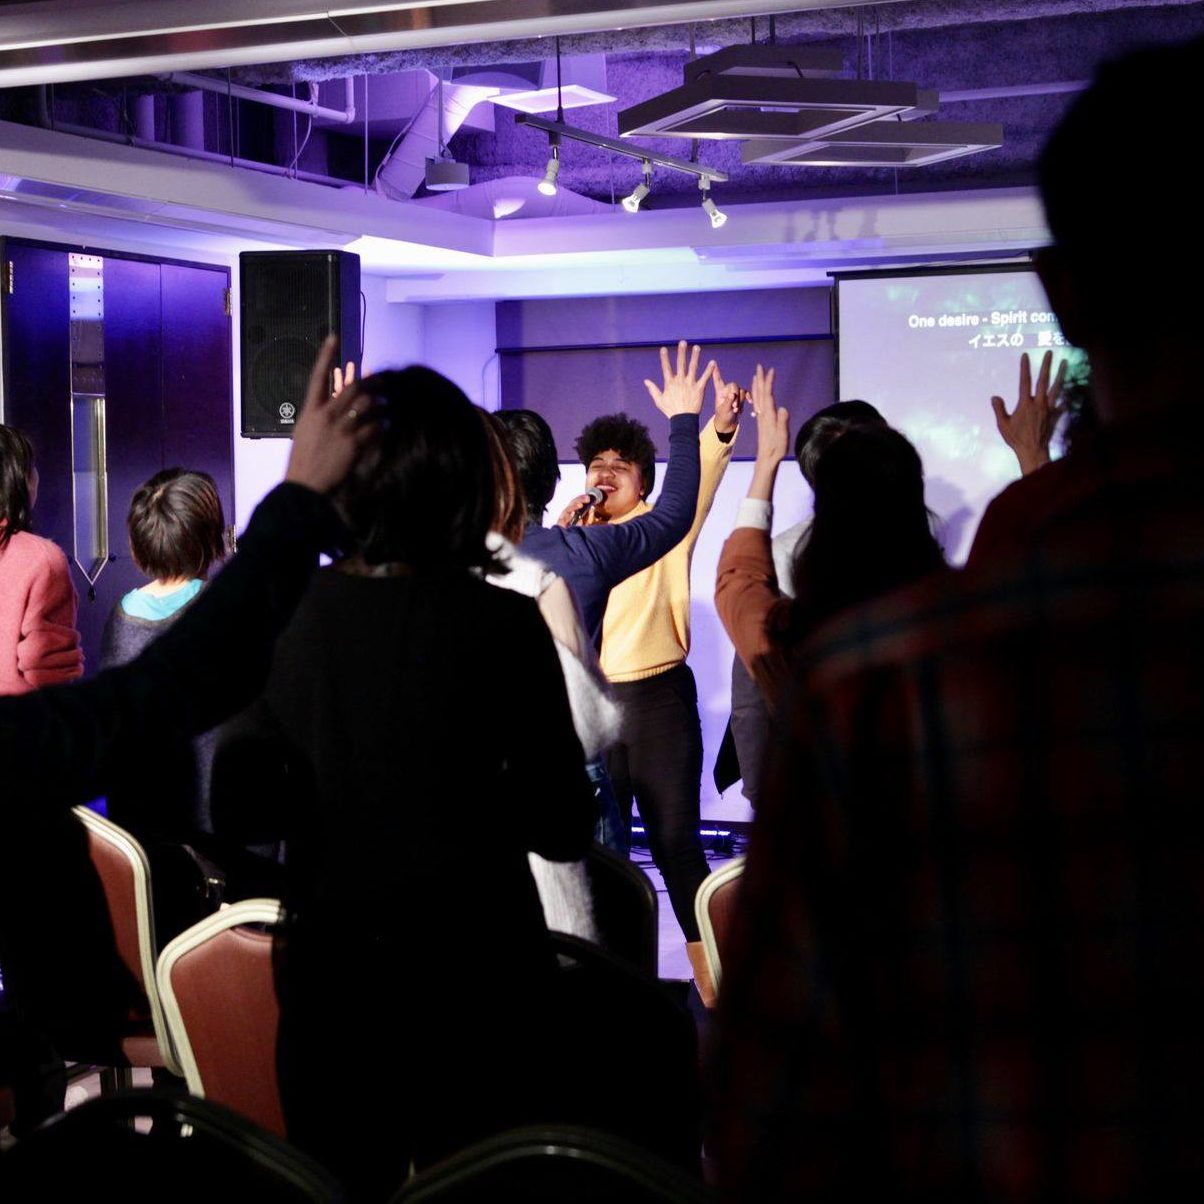 Lifehouse Sendai people worshipping